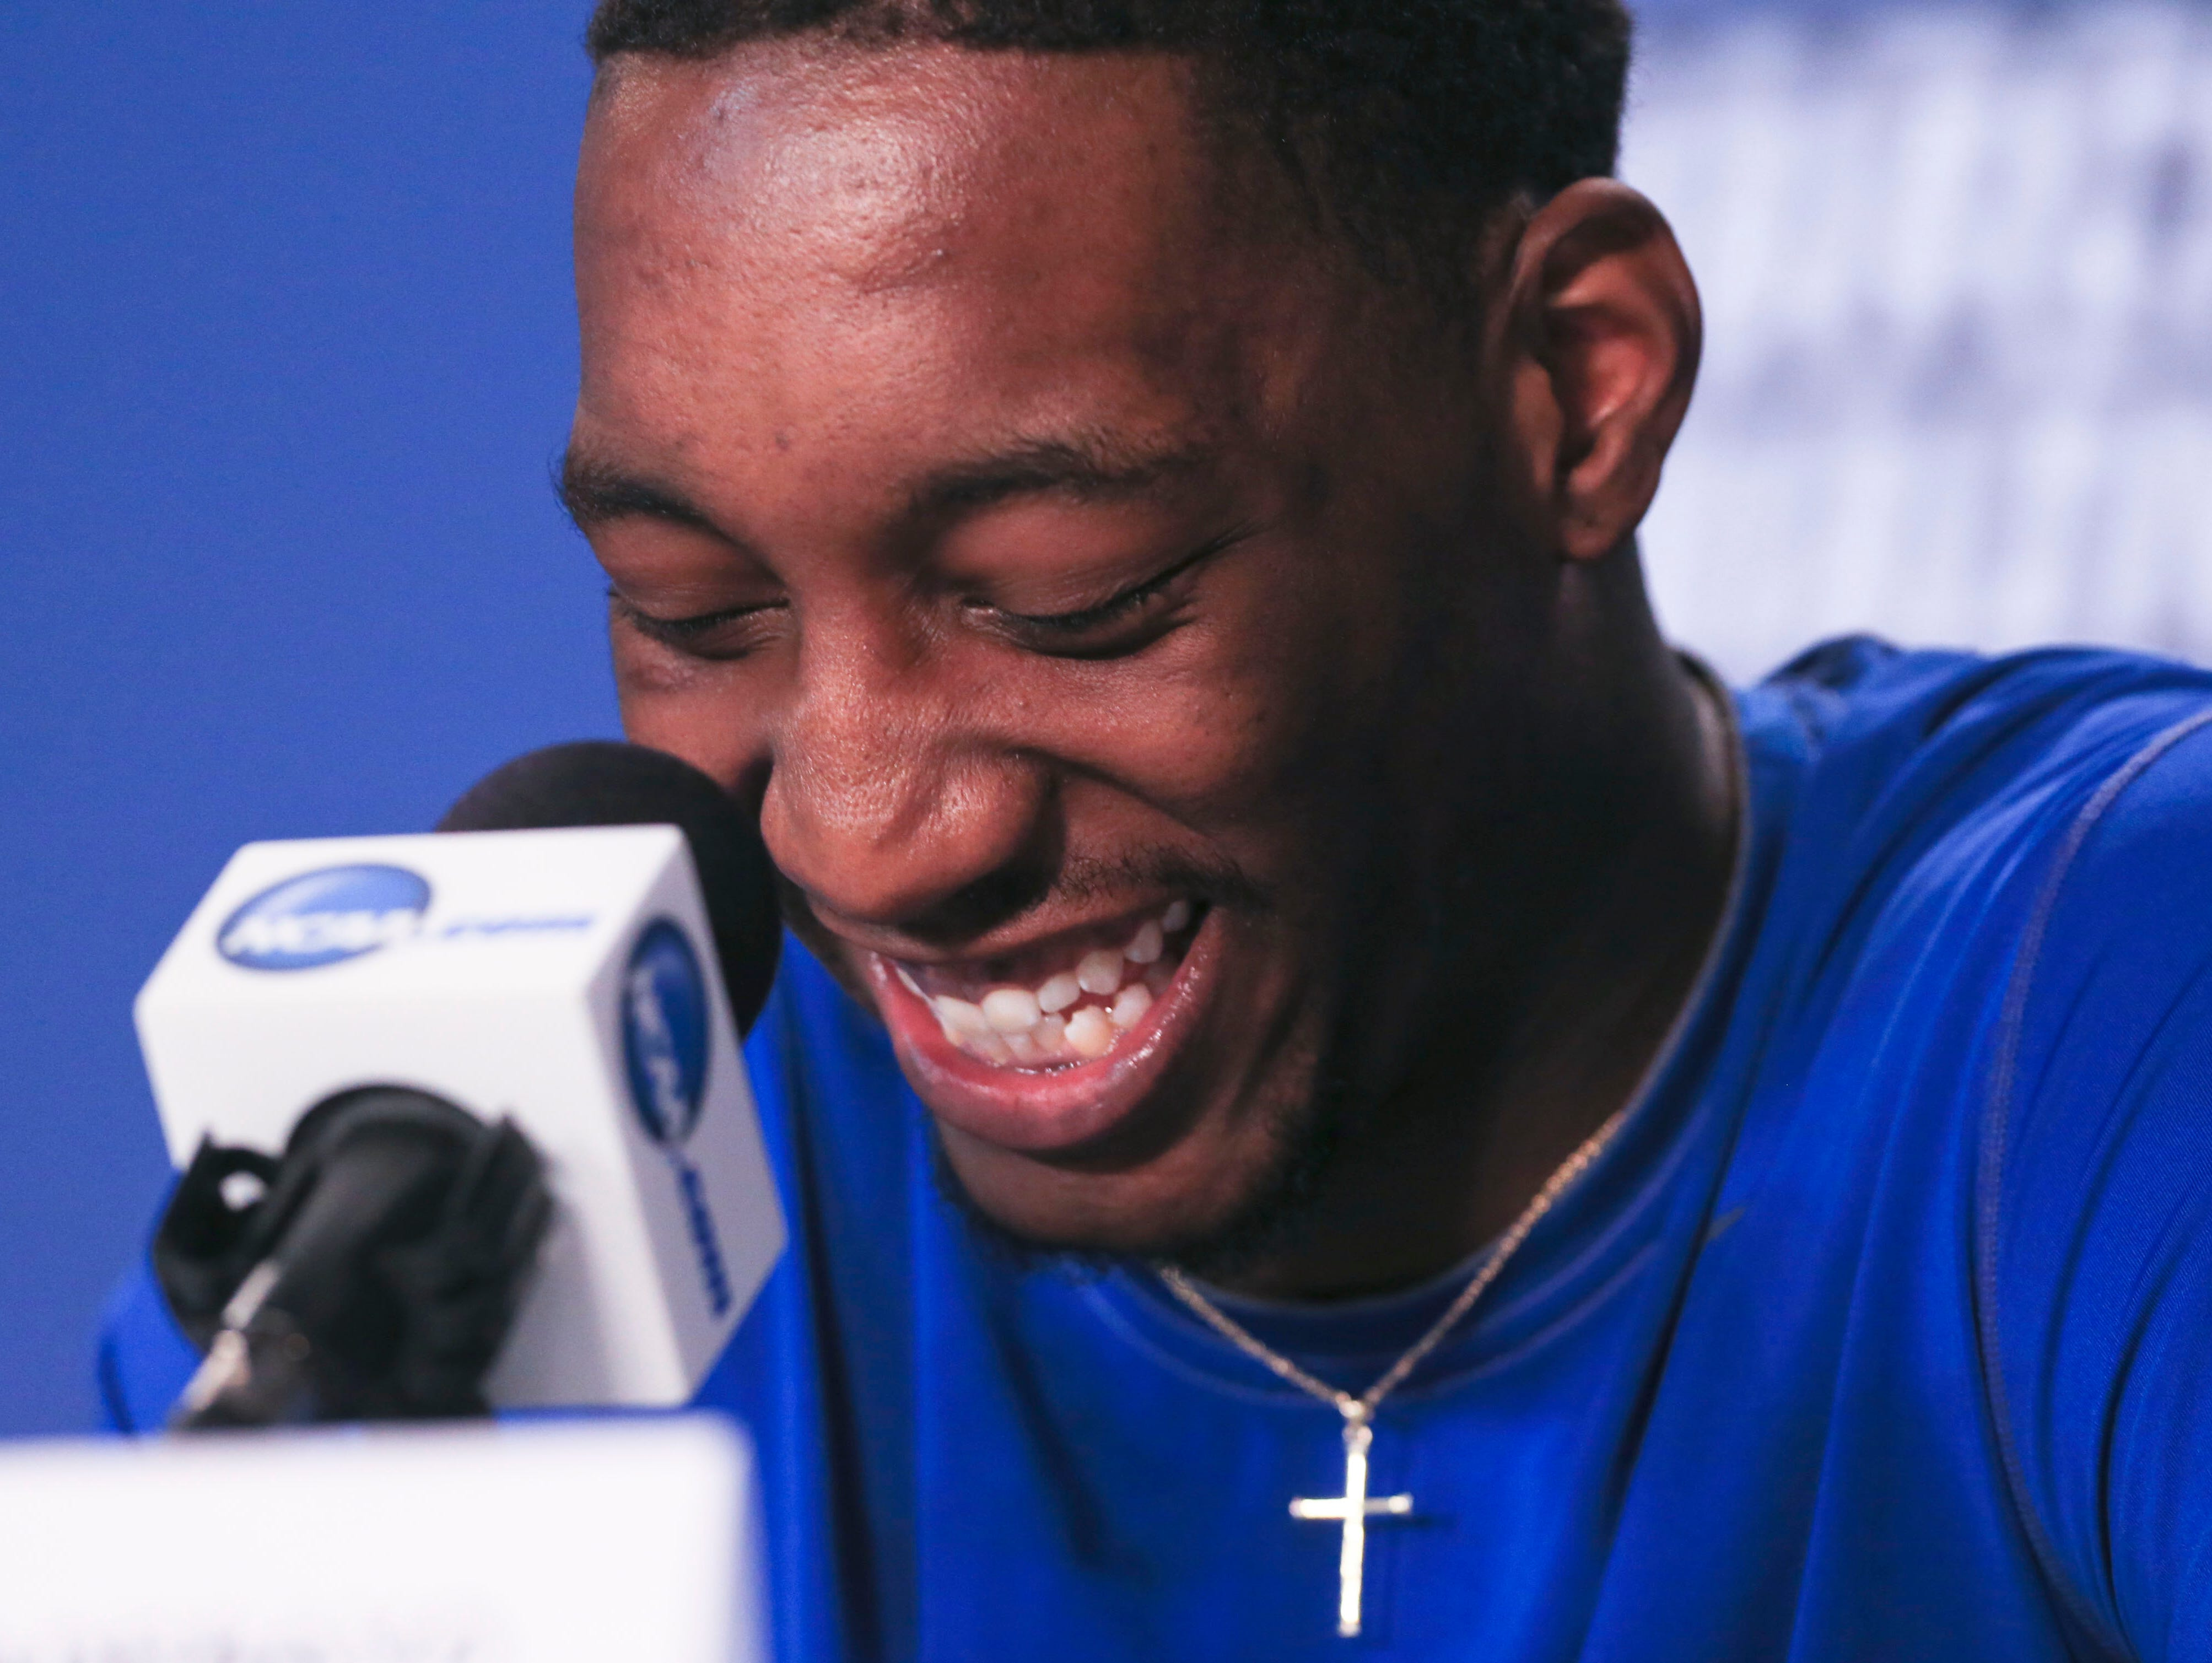 Kentucky's Bam Adebayo laughs after an answer by teammate De'Aaron Fox during a press conference Saturday afternoon in Indy.